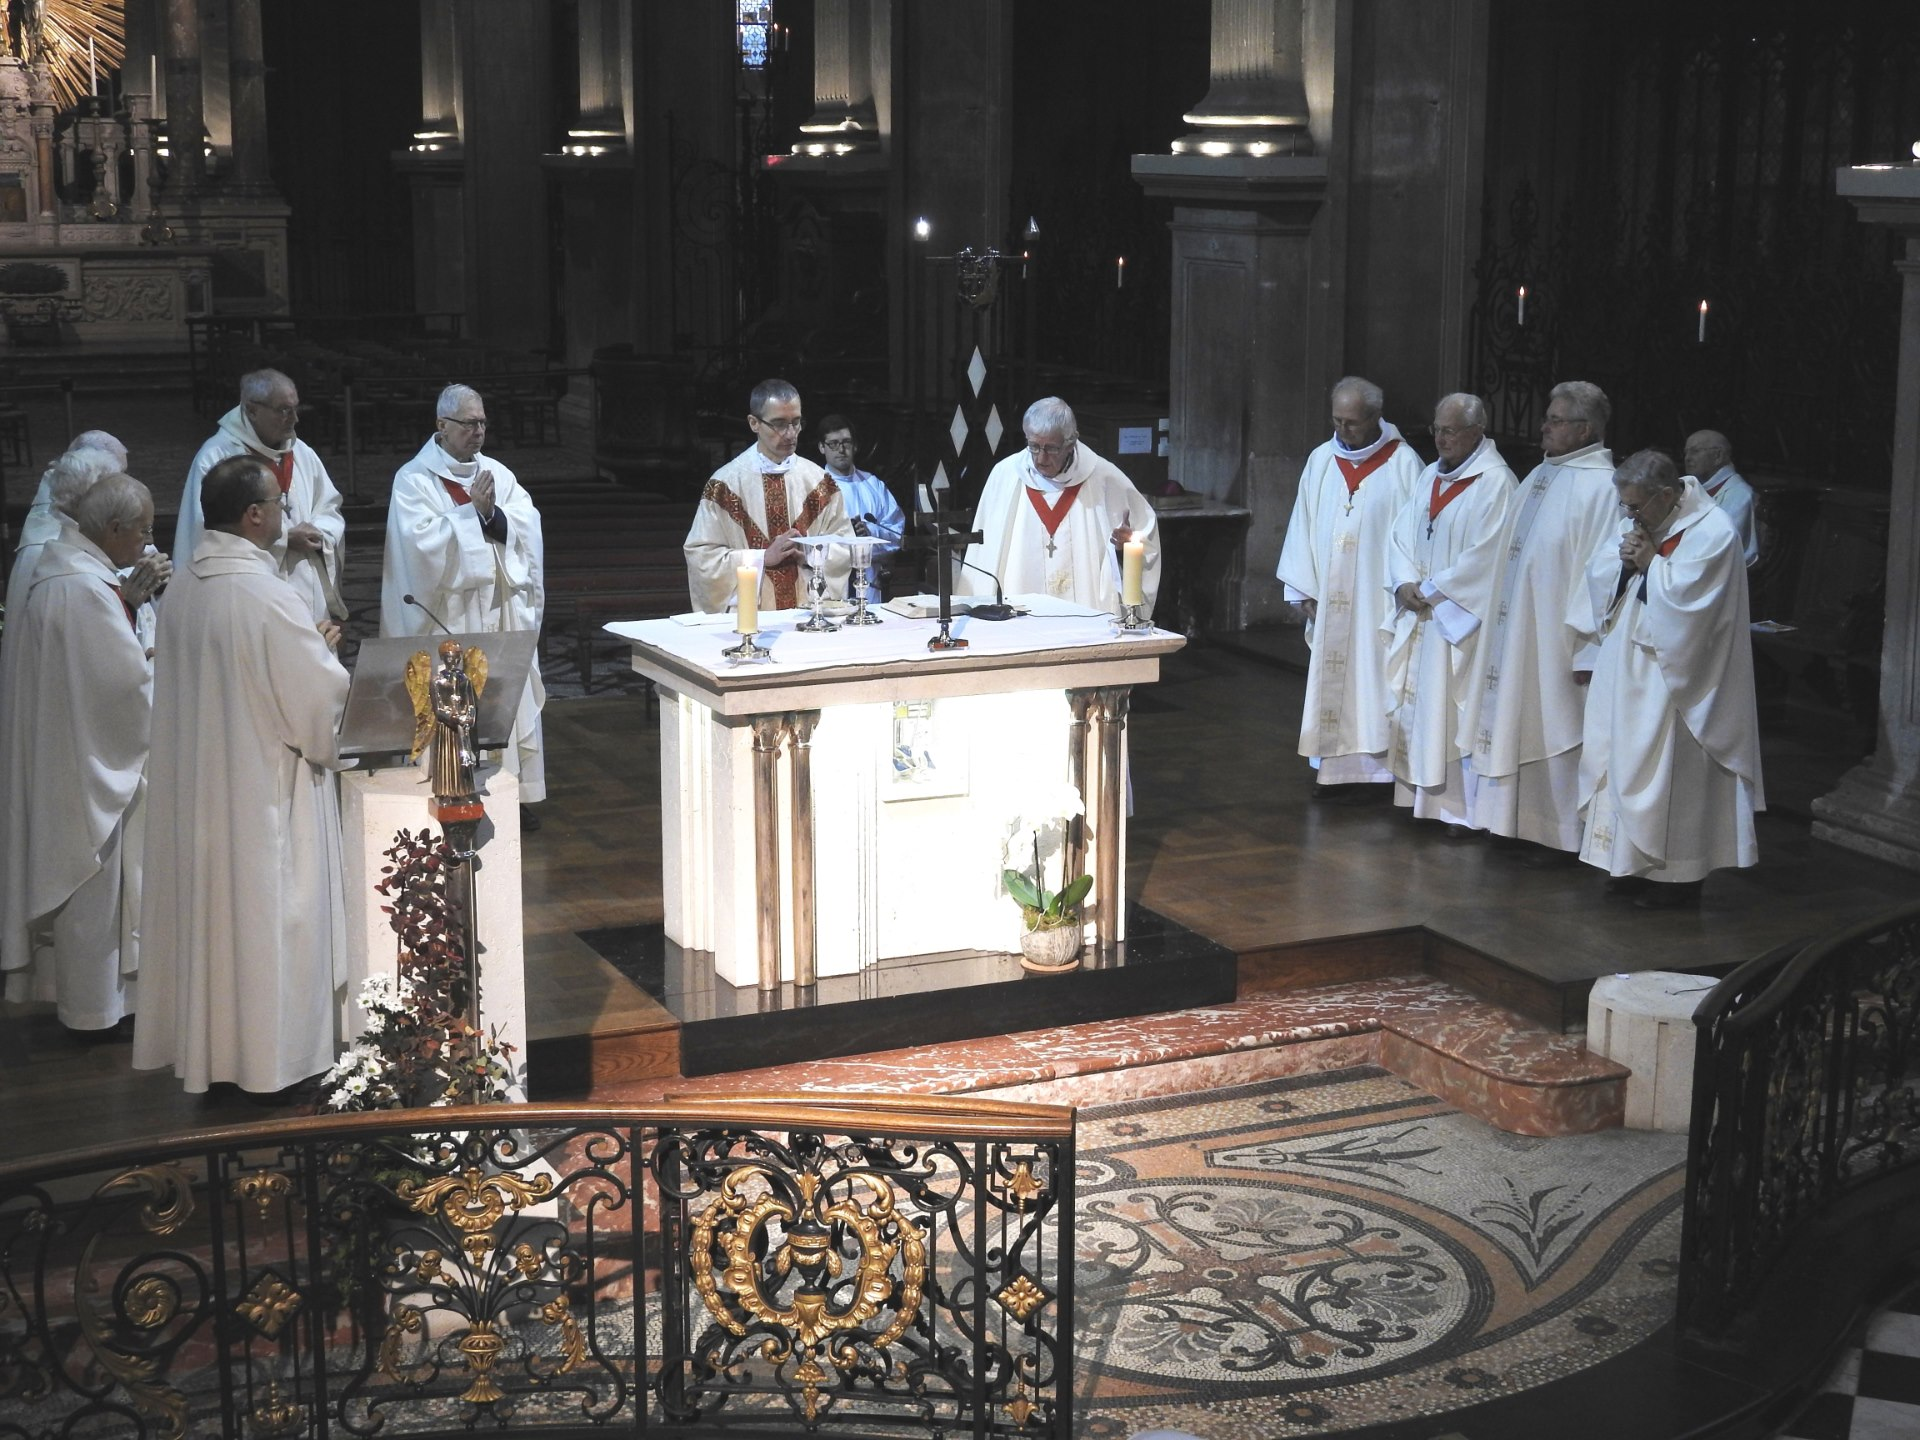 Chapitre Cathedral 2018 10 29 (8)